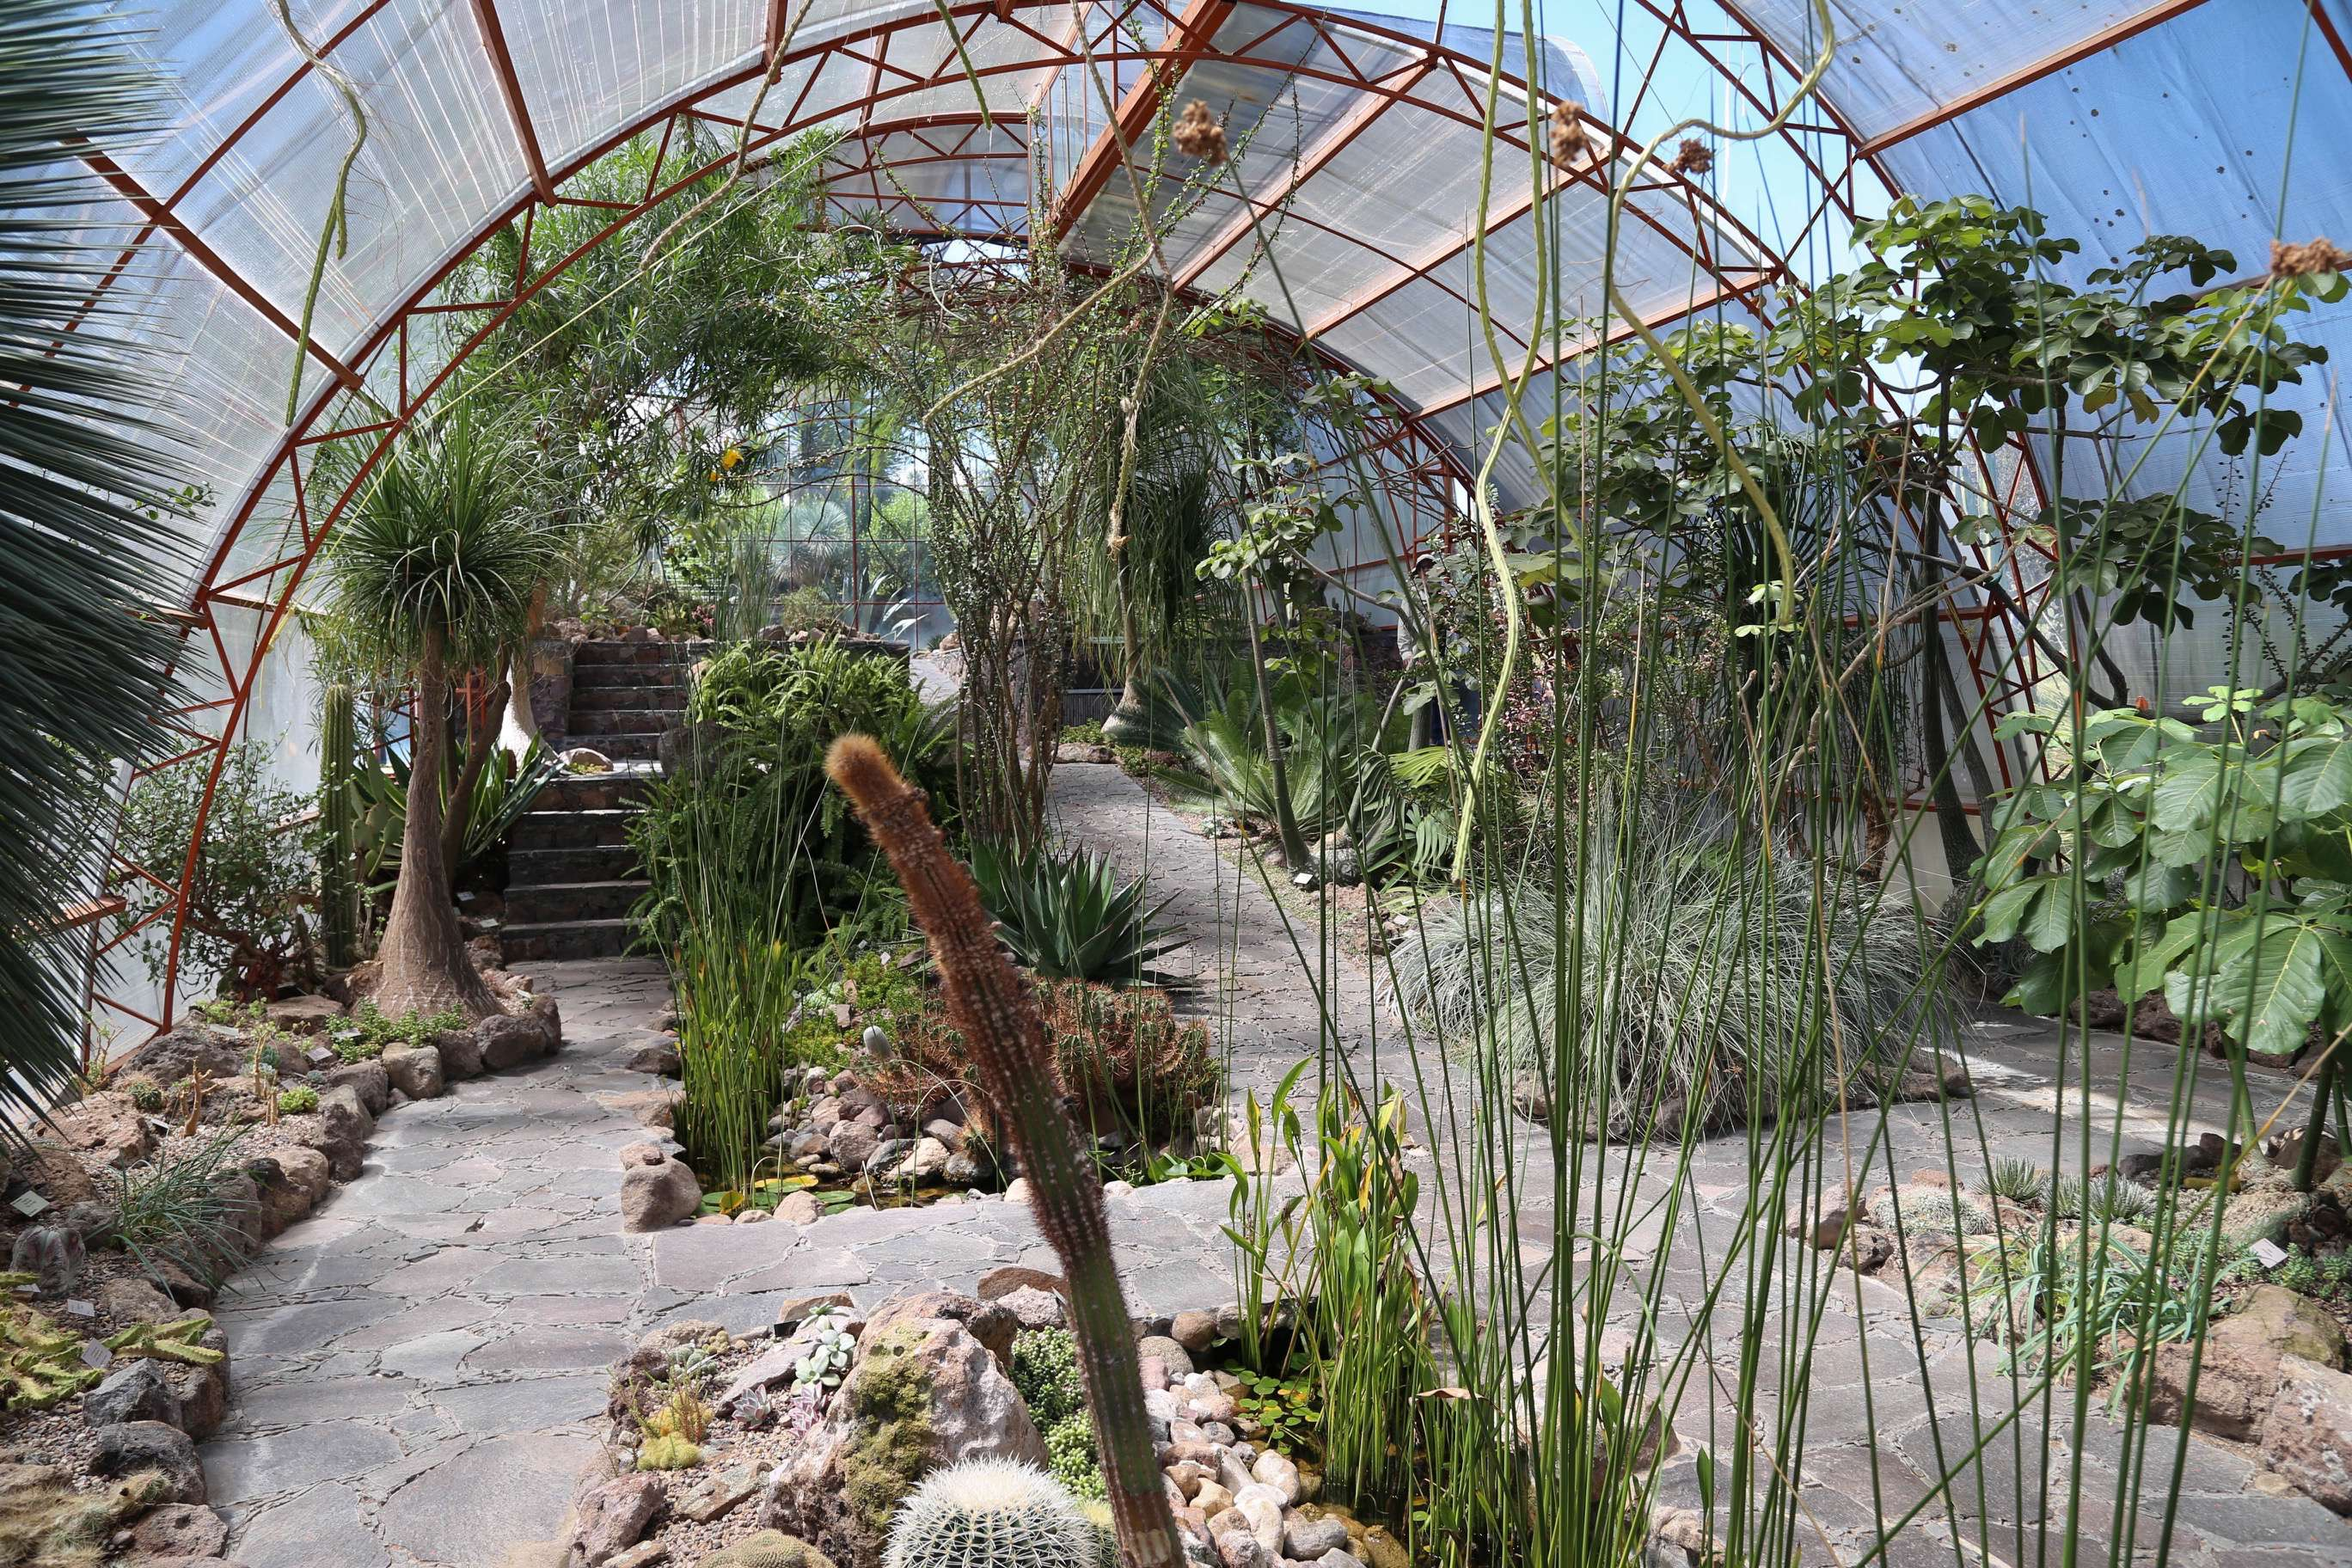 Inside the greenhouse is the second largest collection of succulents in Mexico.